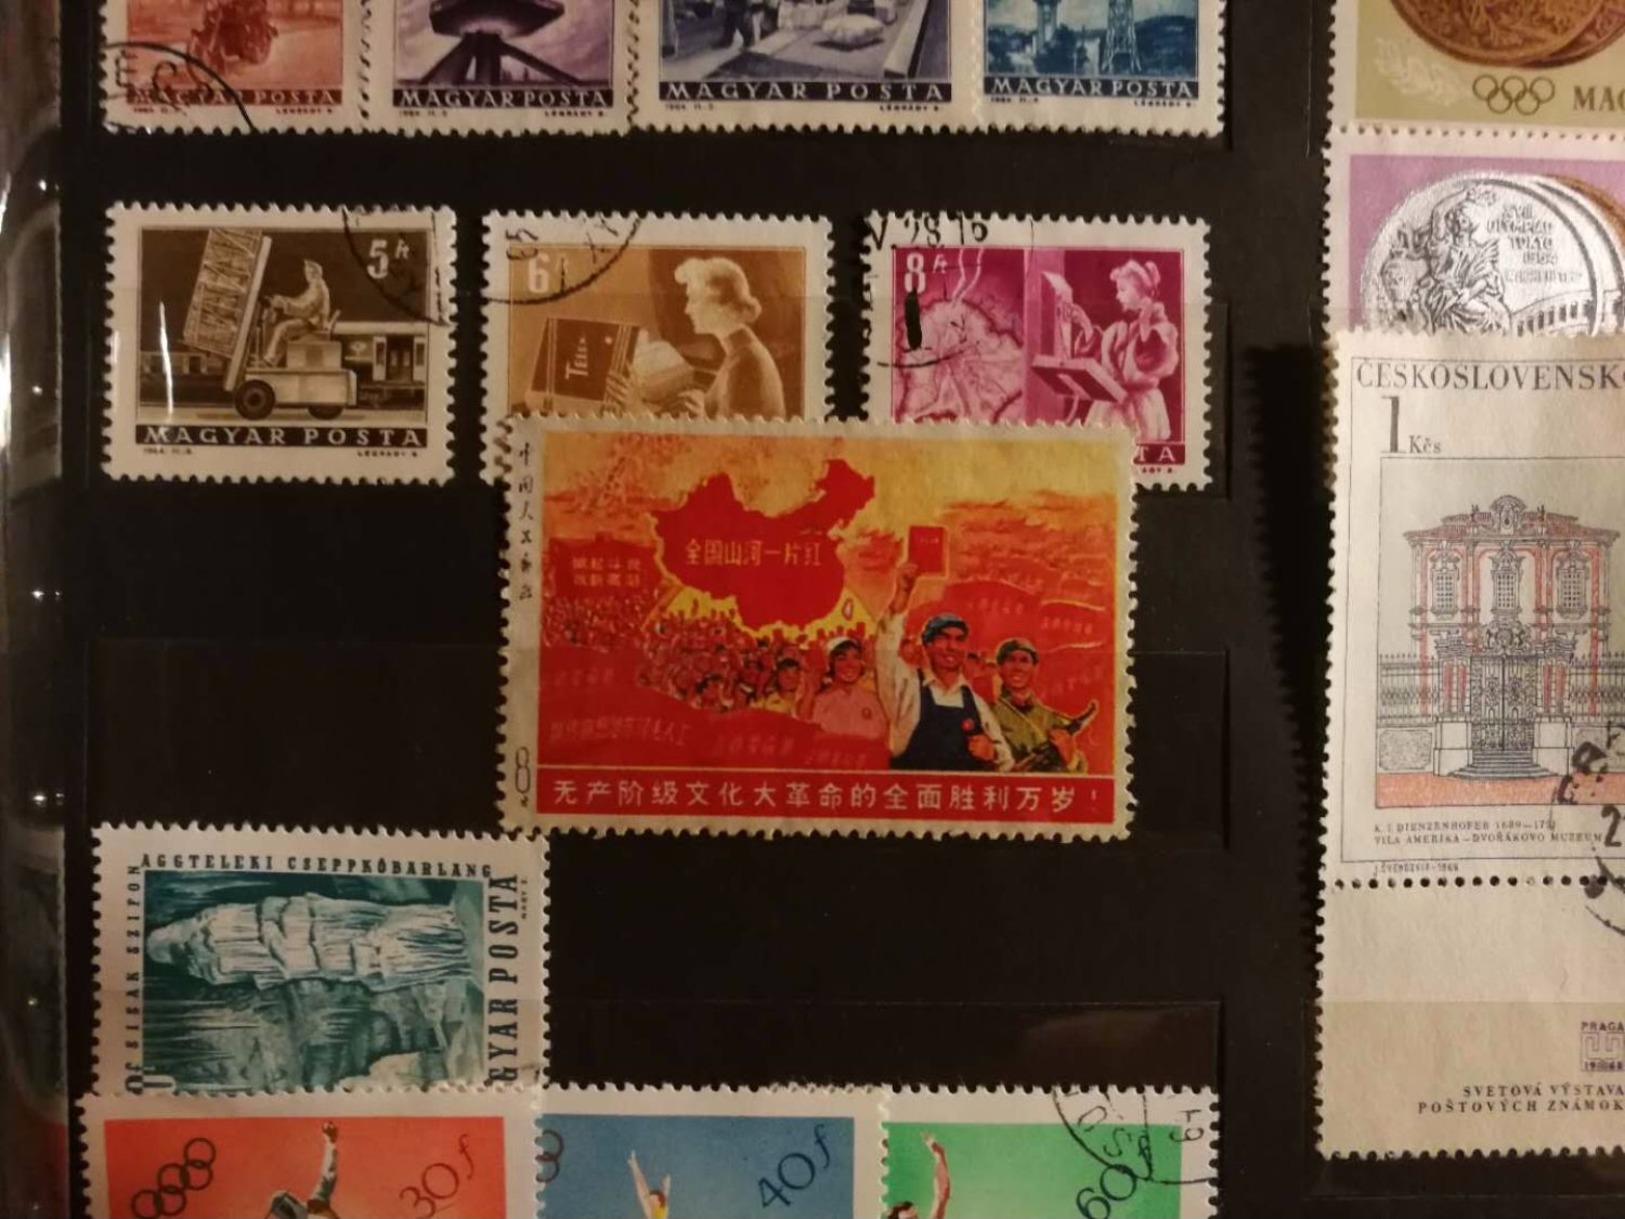 China Big Red Stamp 1969 China PRC Rote Briefmark Culture Revolution Chinese Post 8 Cent - 1949 - ... People's Republic